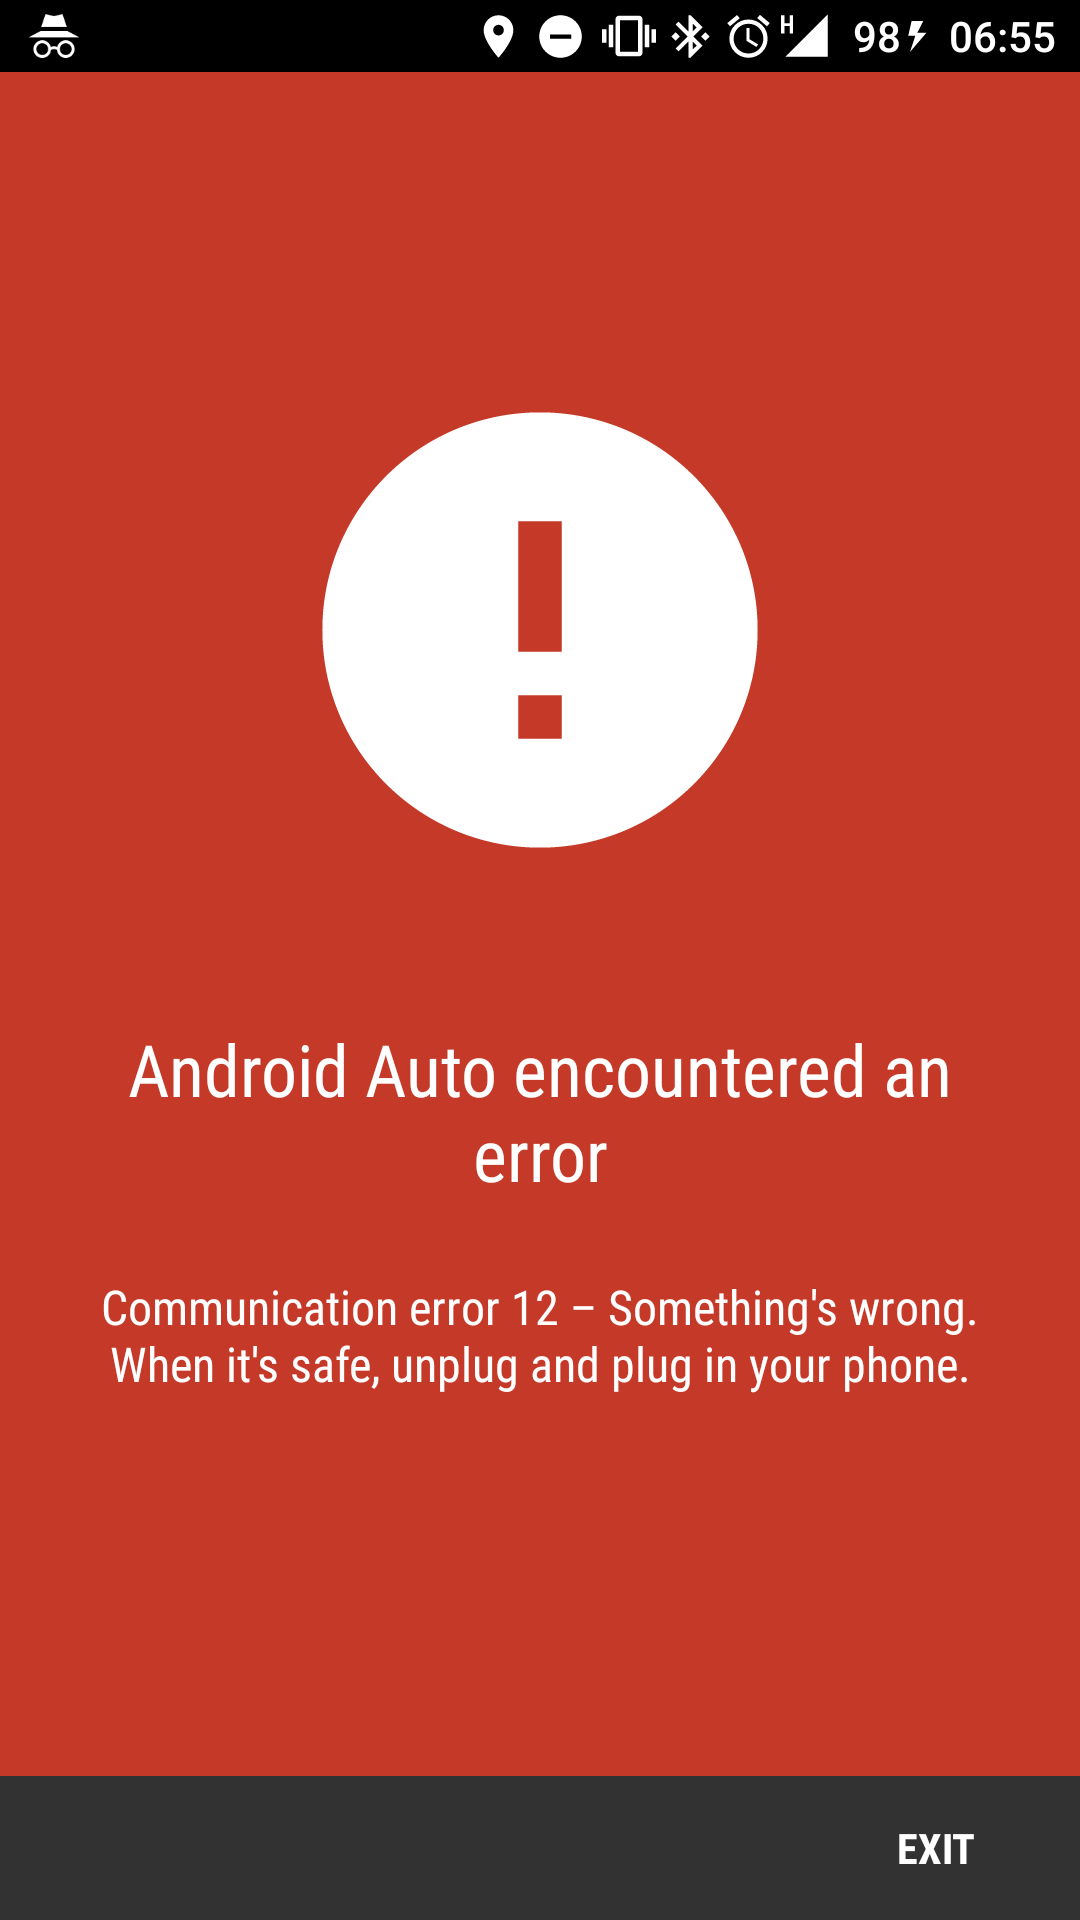 Communication error 12 - Android Auto crashes - Android Auto Help